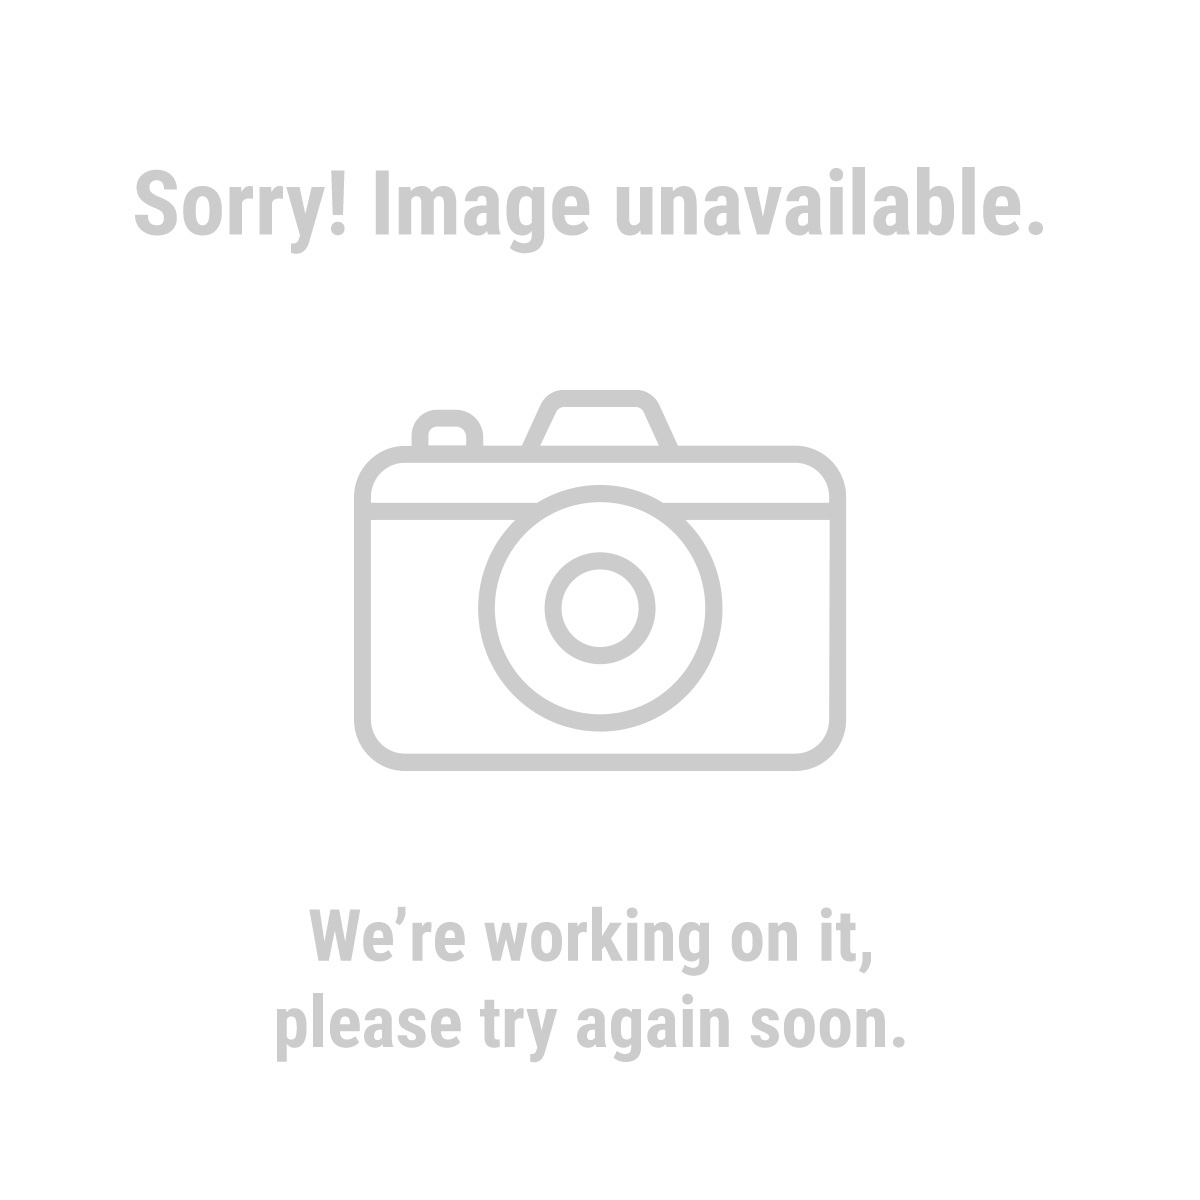 "Moly Carb 38534 7-1/4"", 24 Tooth Molybdenum Tipped Circular Saw Blade"